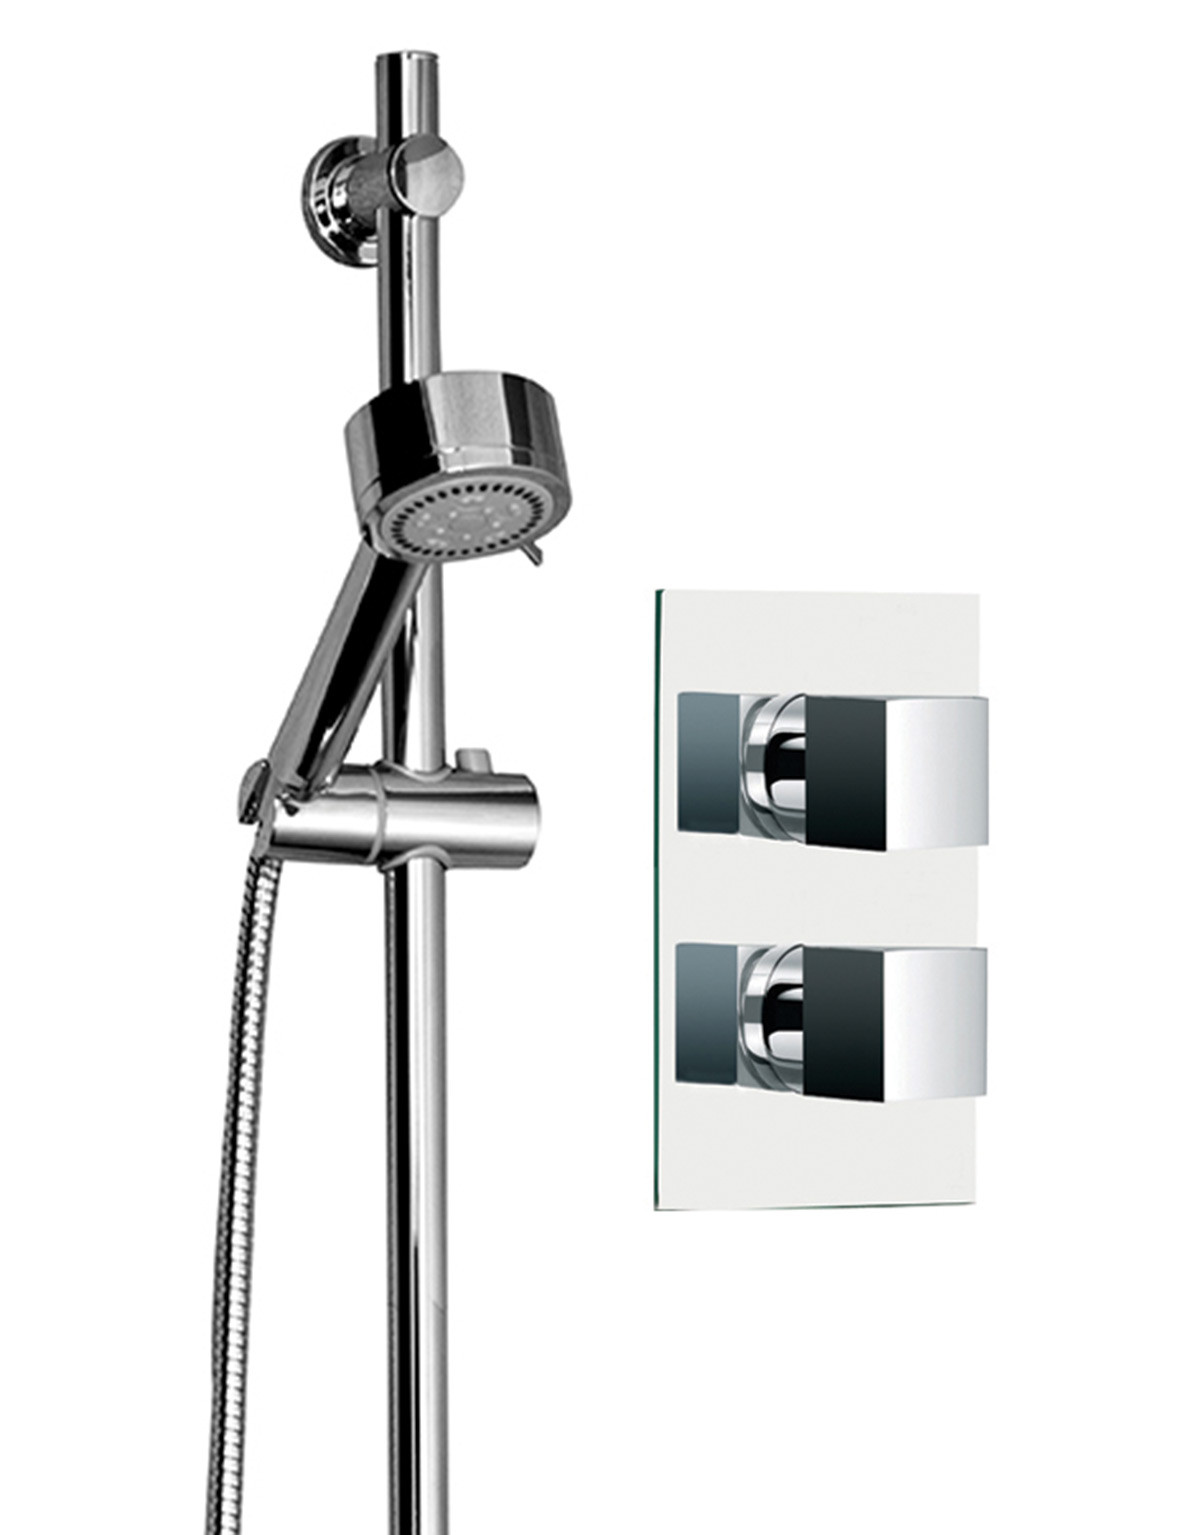 Cubix Twin Thermostatic Valve With Tyne Slide Rail Kit & Round Shower Elbow